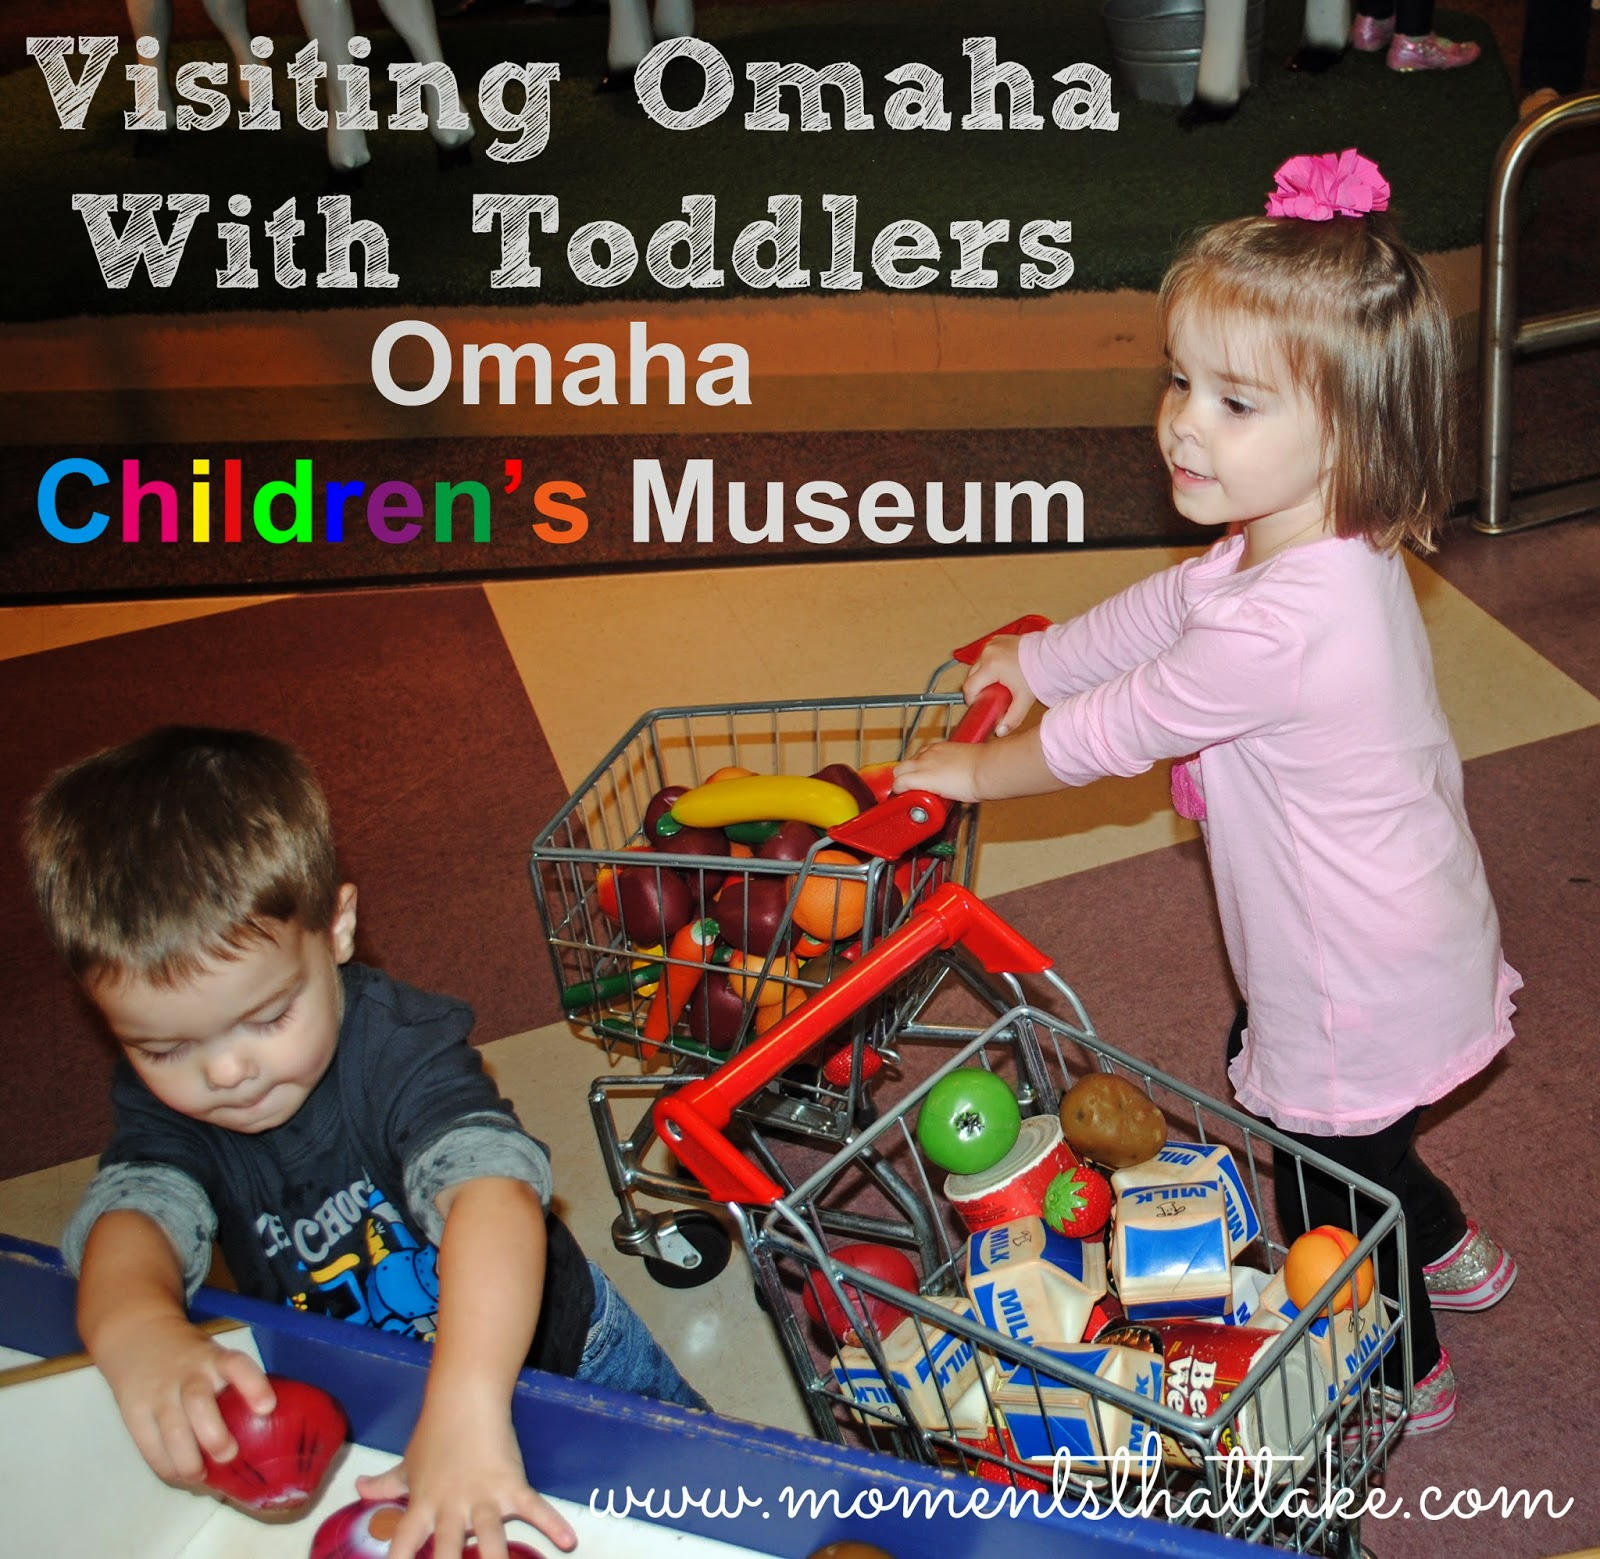 Activities for Kids in Omaha: Visiting the Omaha Children's Museum with Toddlers